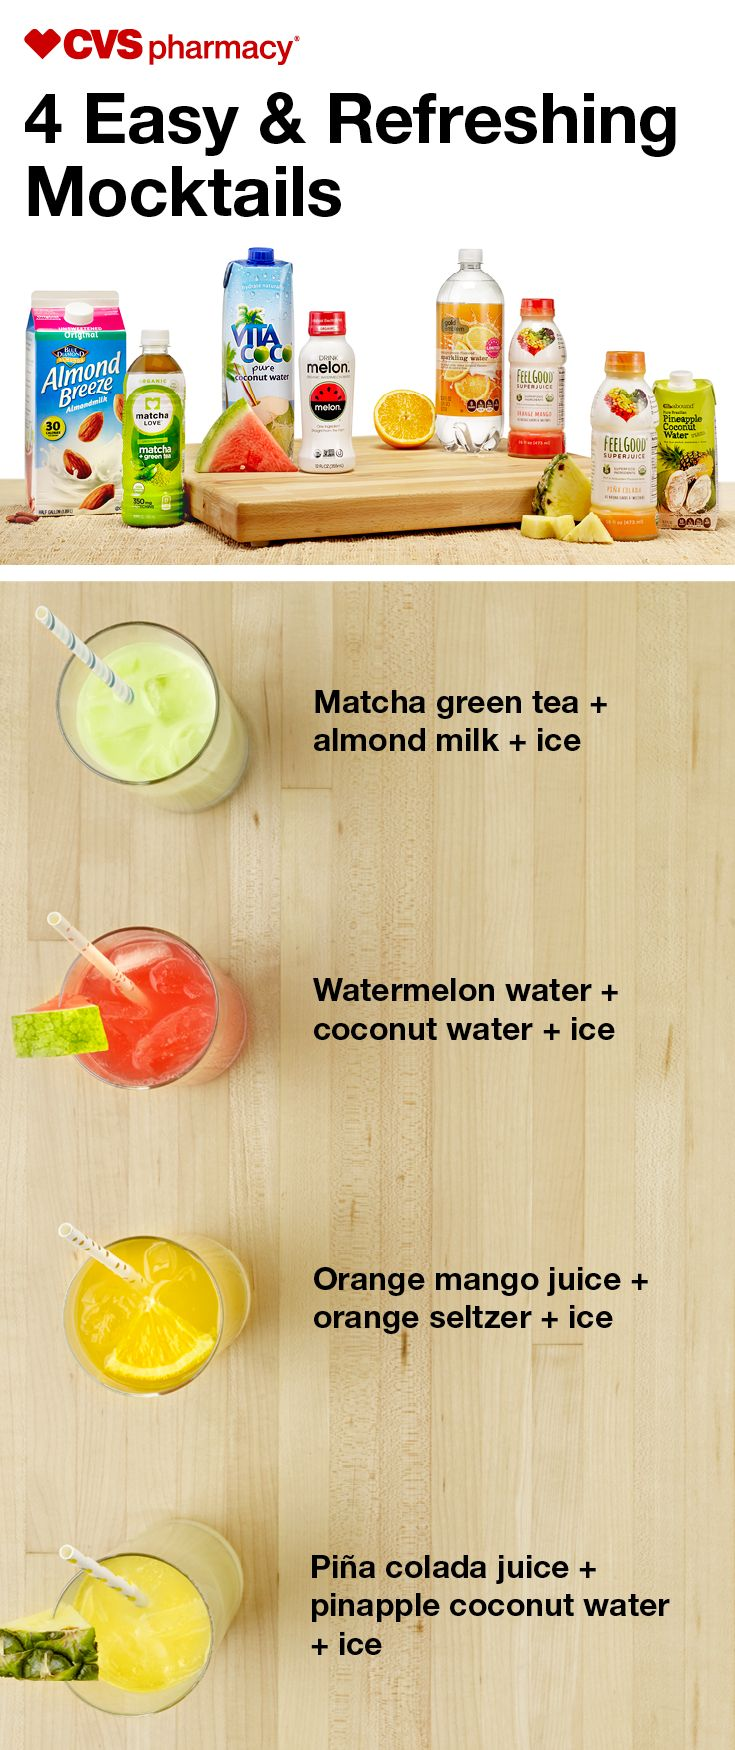 Plan for a delicious DIY delight with these summer drink recipes. Powerhouse ingredients lead to big flavor and guilt-free refreshment. Here are four easy mocktails to serve up this summer (or season)!